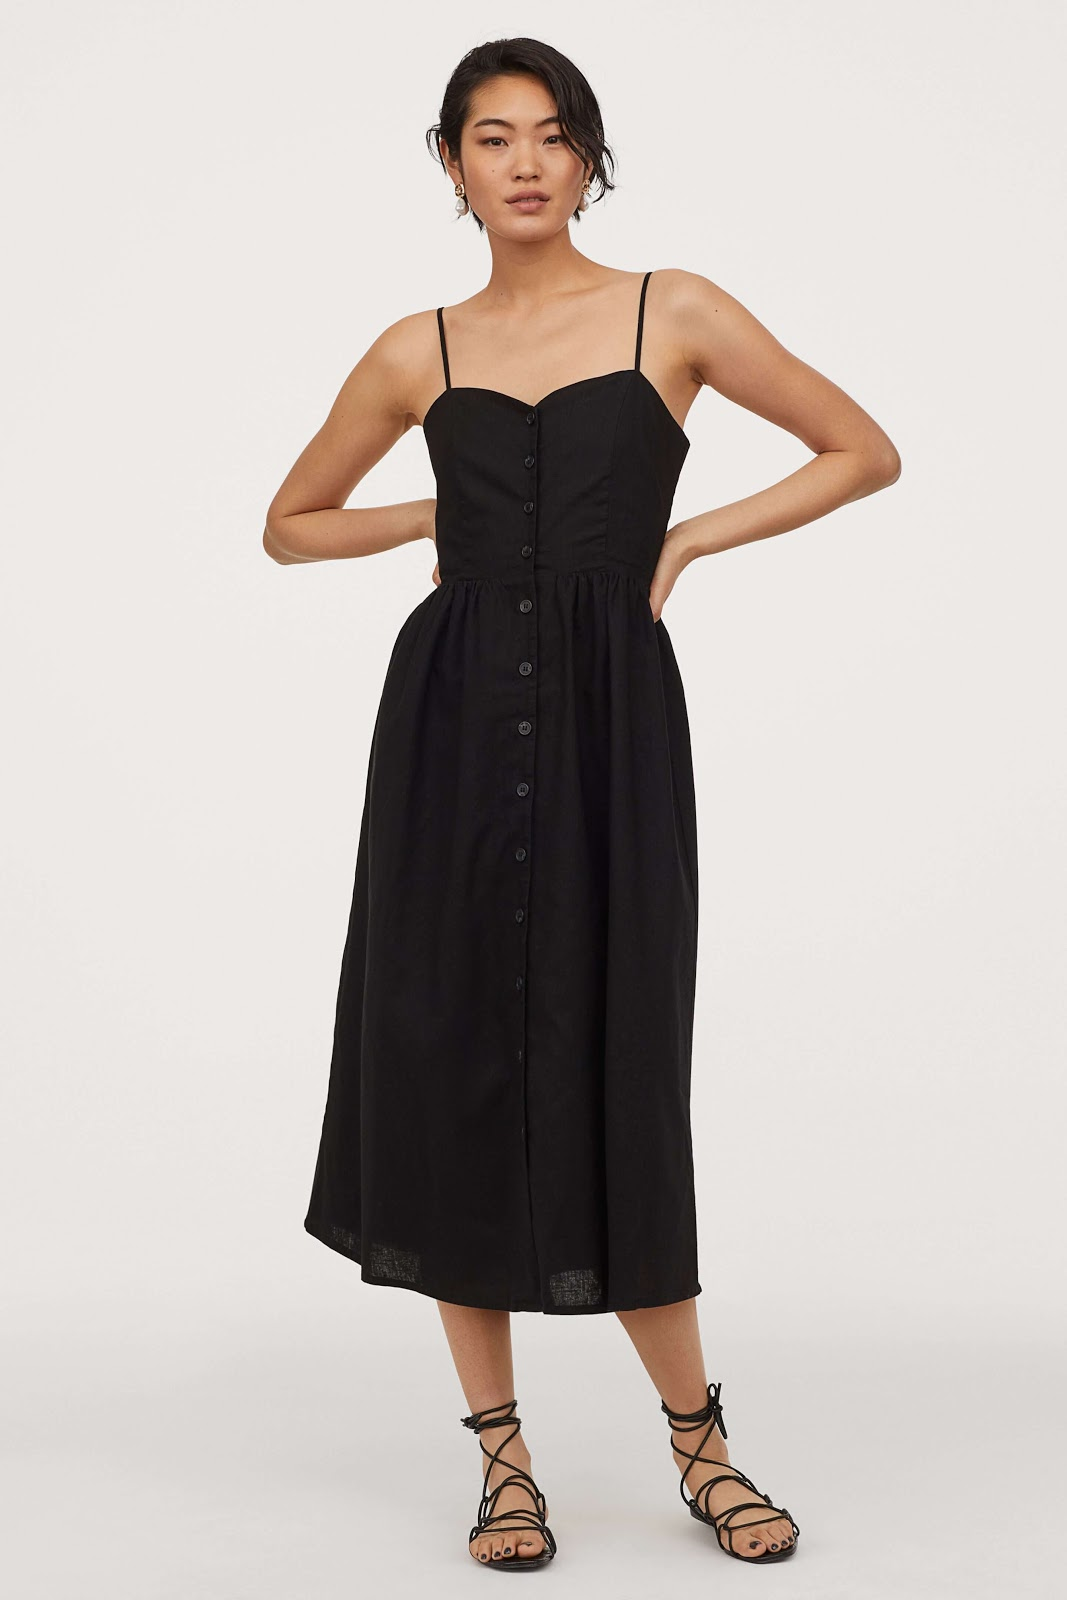 H&M Conscious Black Dress